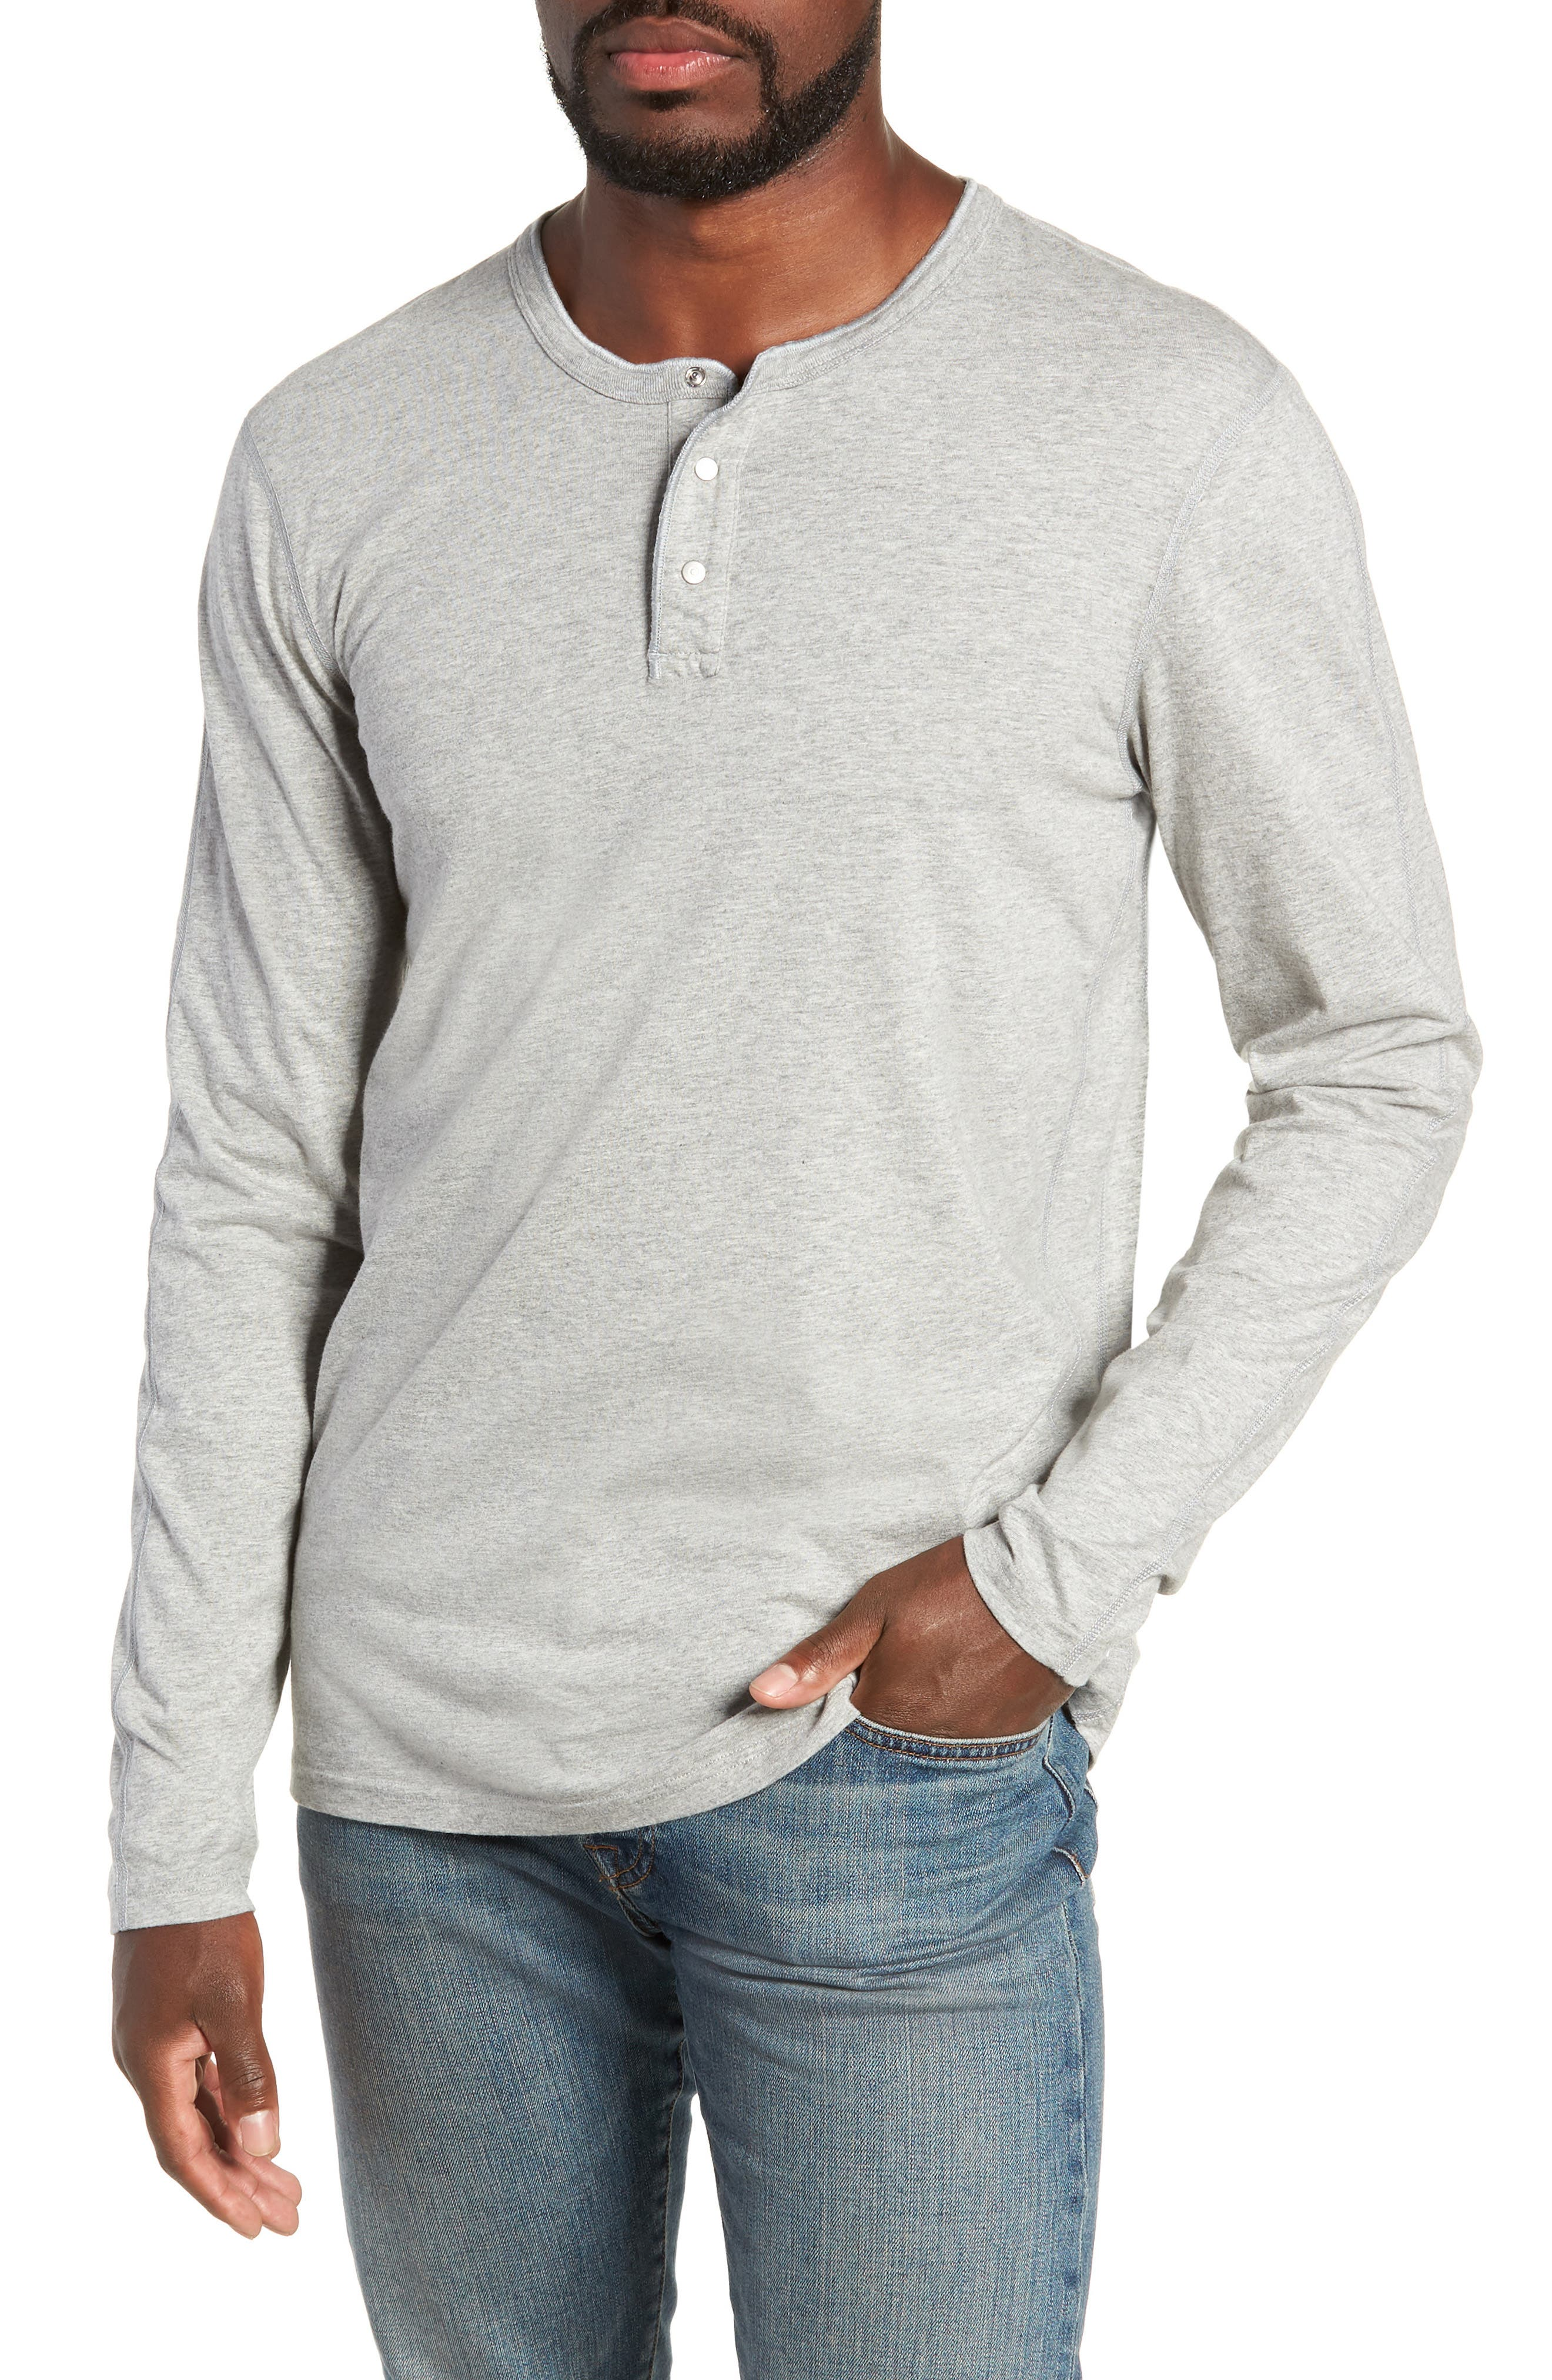 REIGNING CHAMP Long Sleeve Henley T-Shirt in Heather Grey